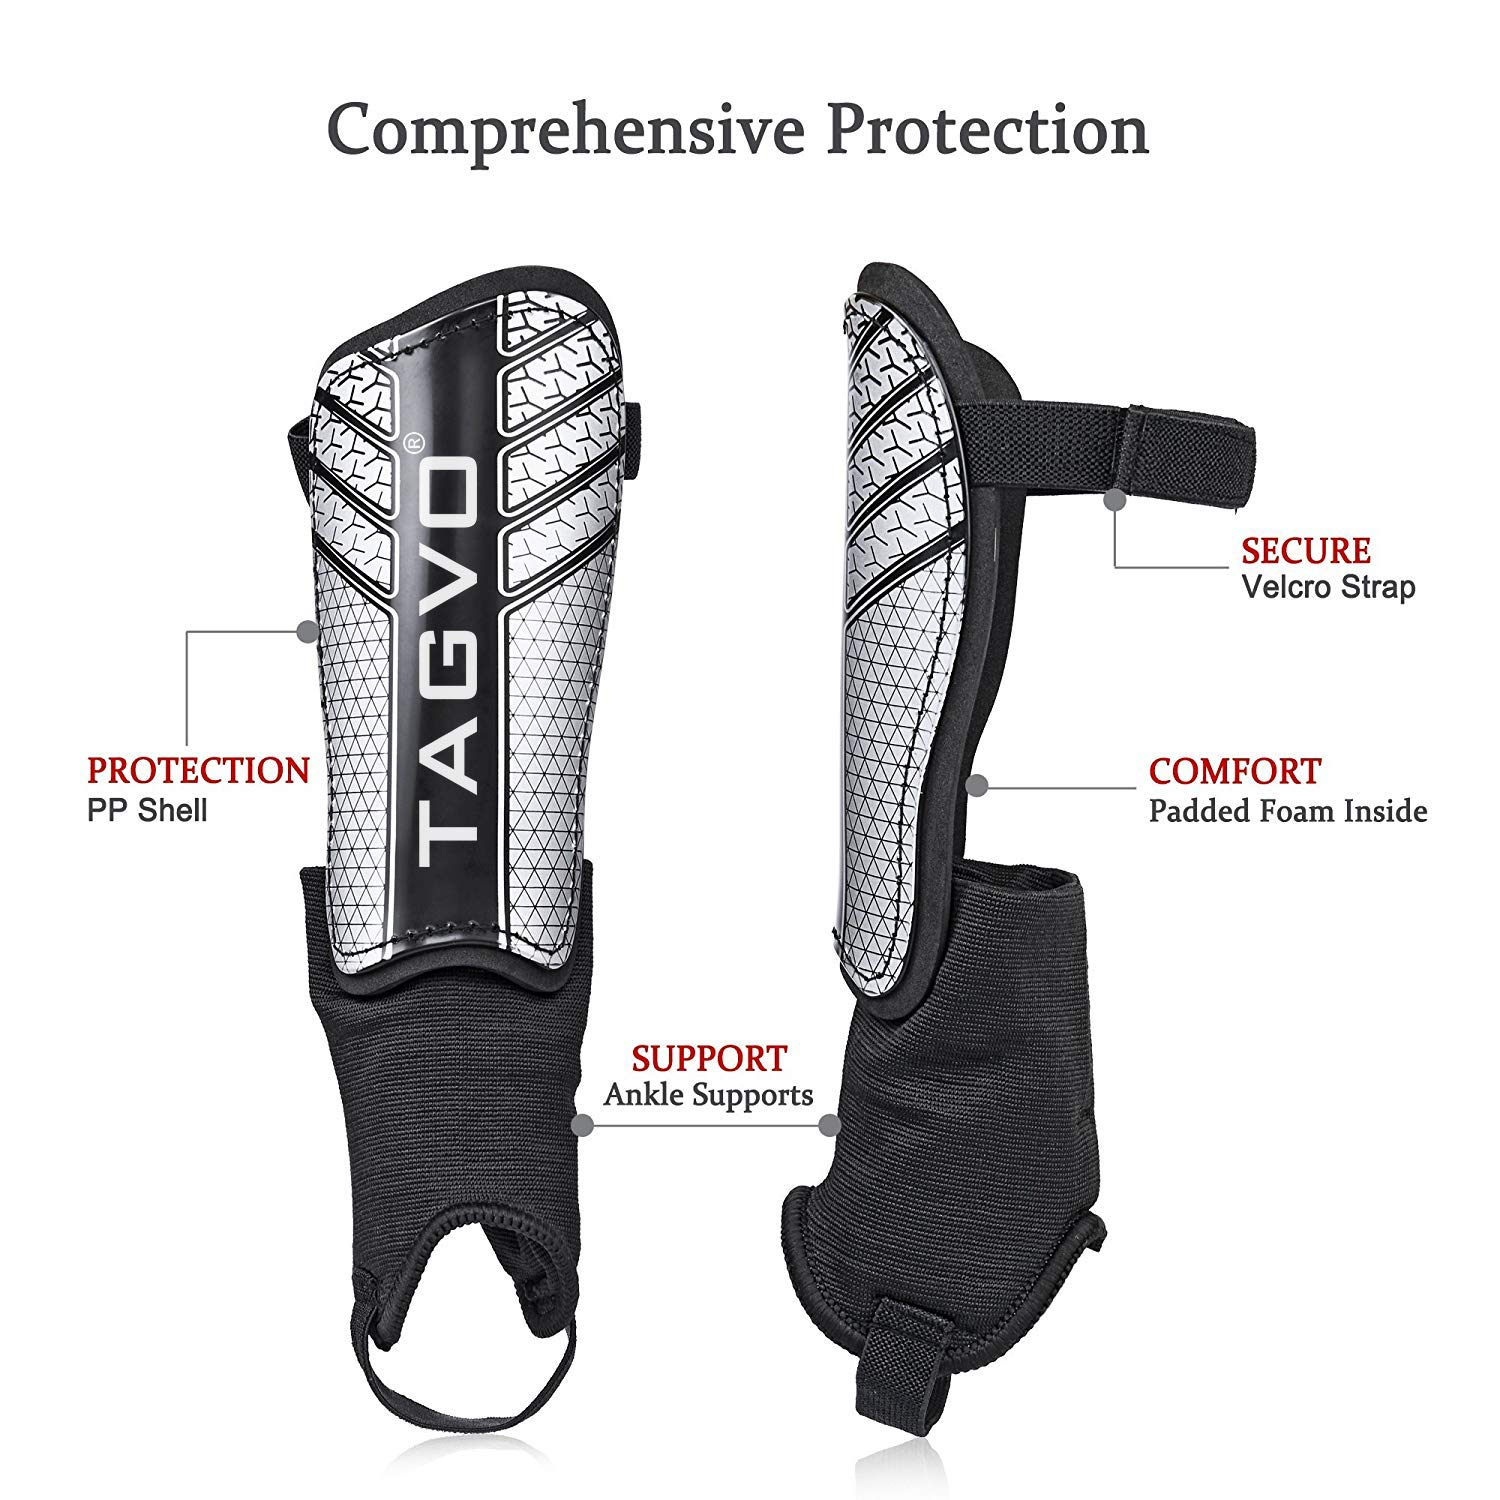 TAGVO Soccer Shin Guards Youth Sizes Child Soccer Shin Pads for Boys Girls Kids Soccer Equipment with Ankle Sleeves Protection